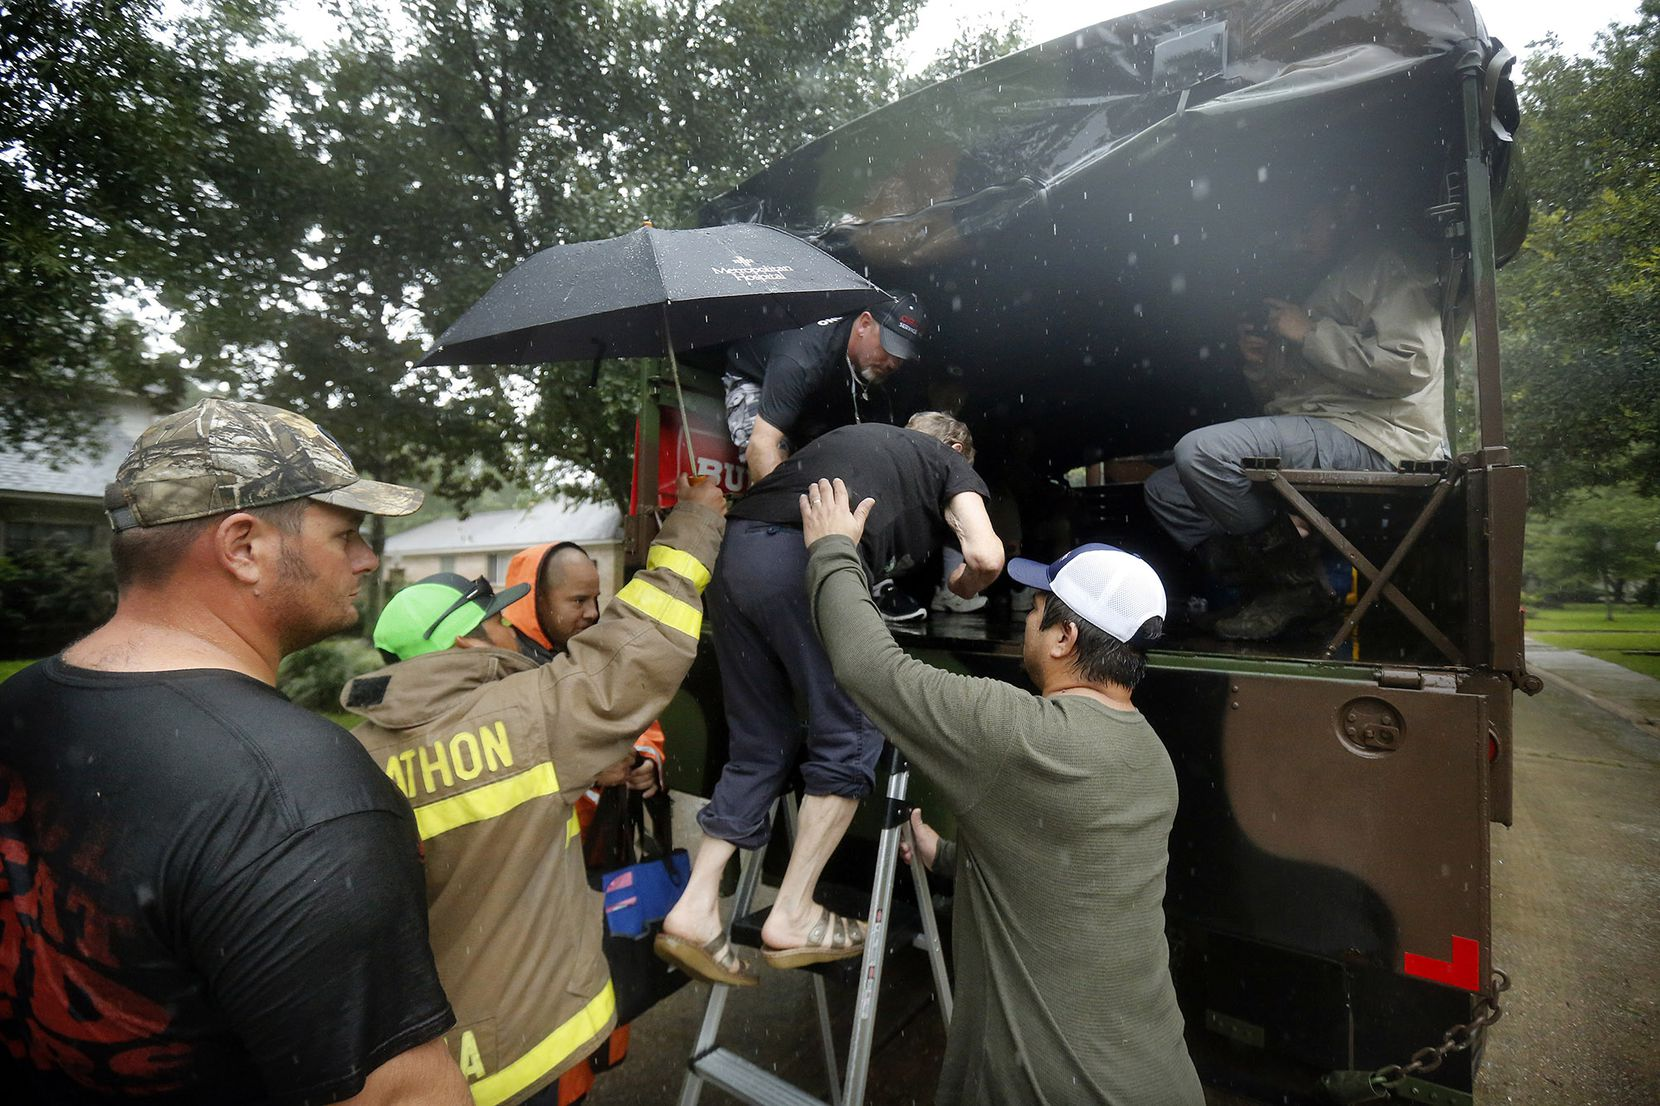 Volunteers help Carla Babinski into the back of a military-type transport truck as she took heed of a mandatory evacuation order to vacate their rain-soaked Dickinson, Texas home, Monday, August 28, 2017 in the wake of Hurricane Harvey. She and her husband and dog were part of the contingent that were moved.